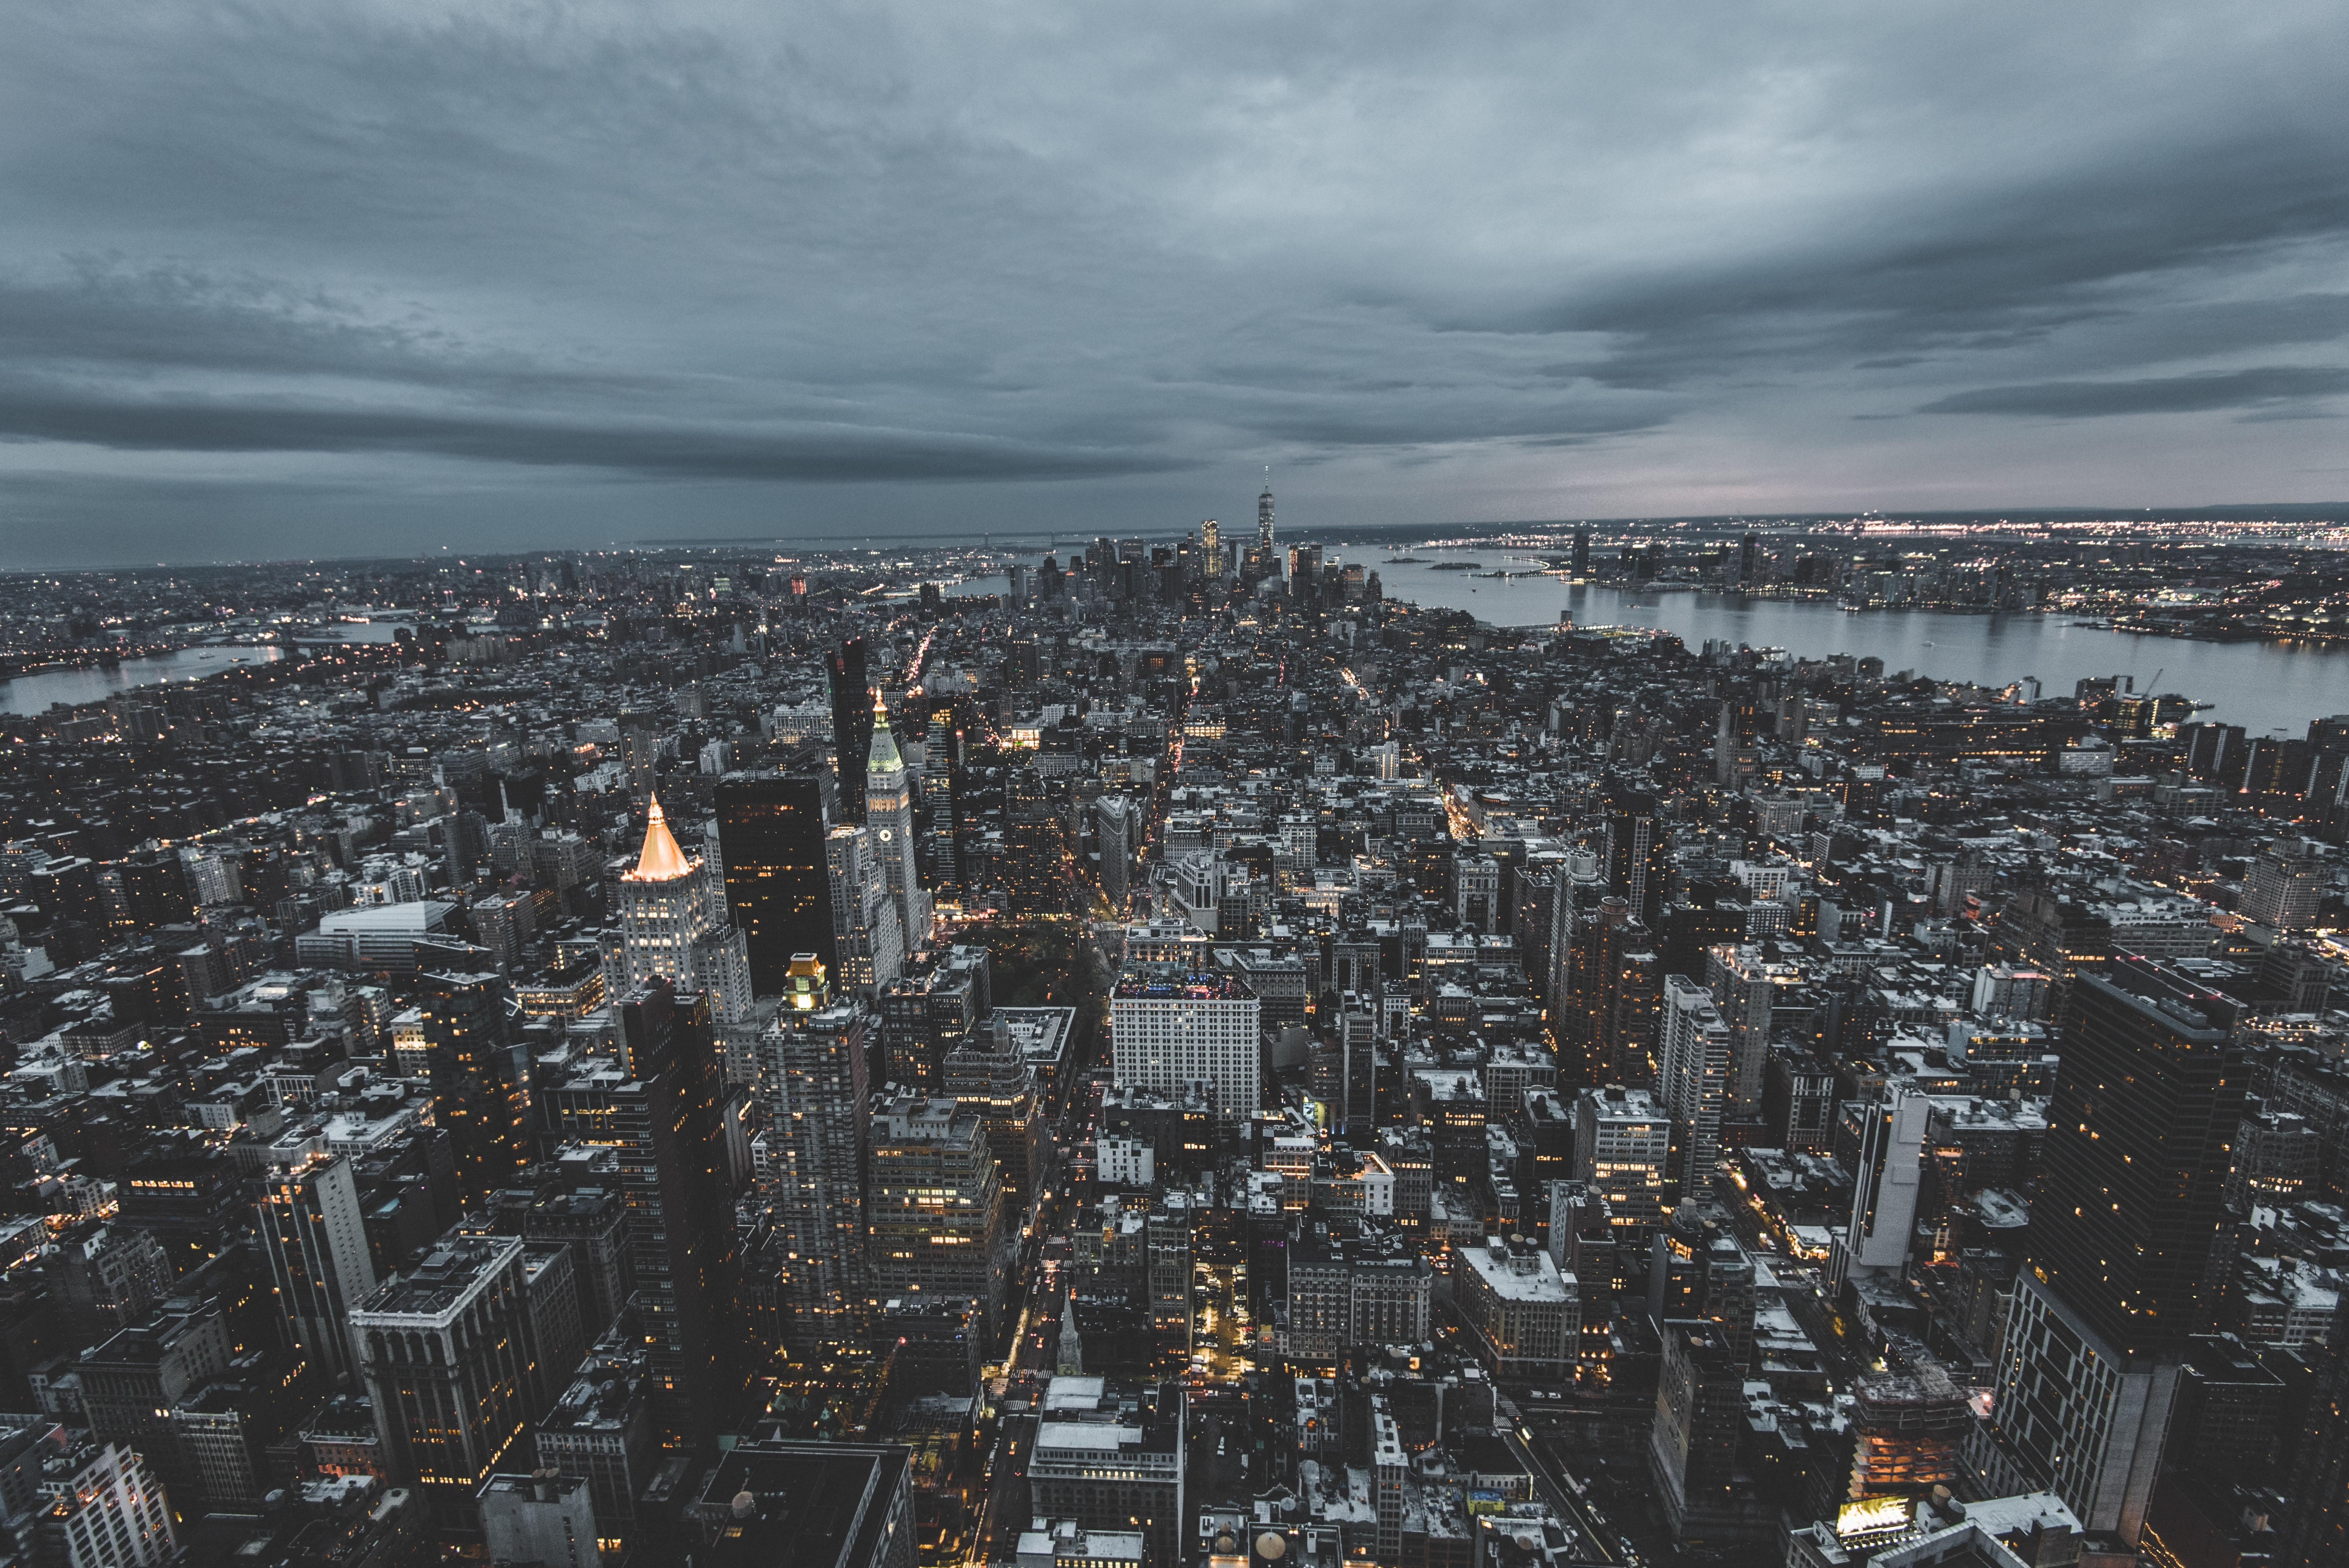 The vast skyline of New York under gray clouds